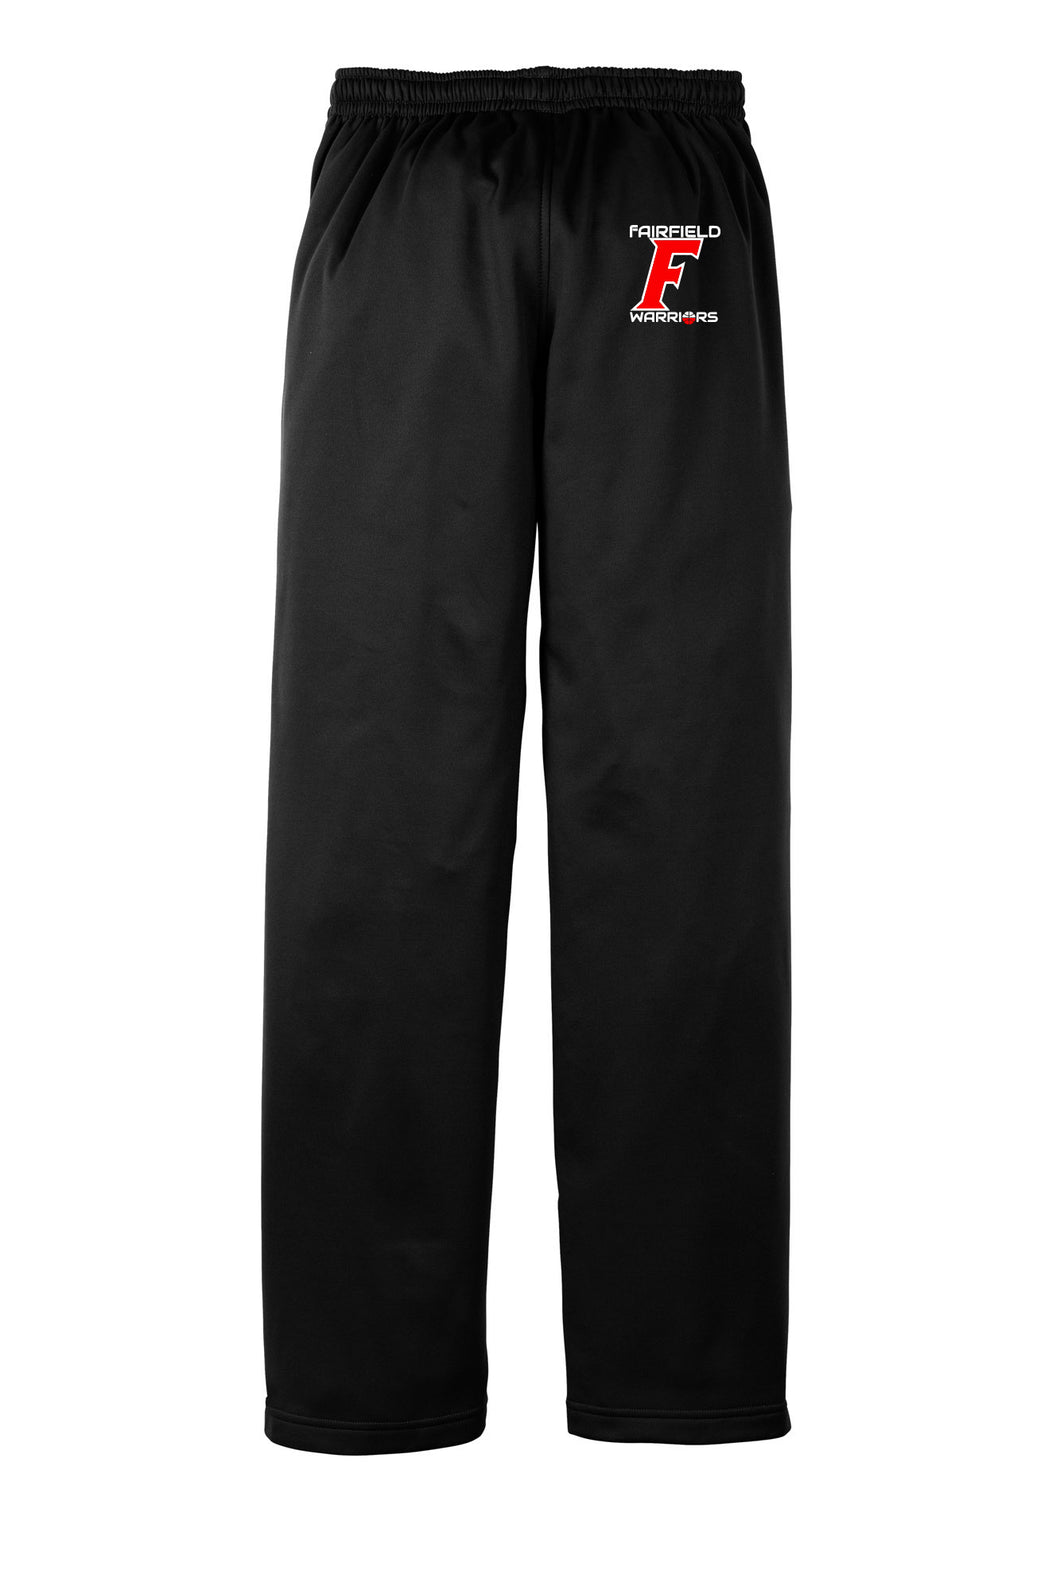 Fairfield Warriors Sweatpants